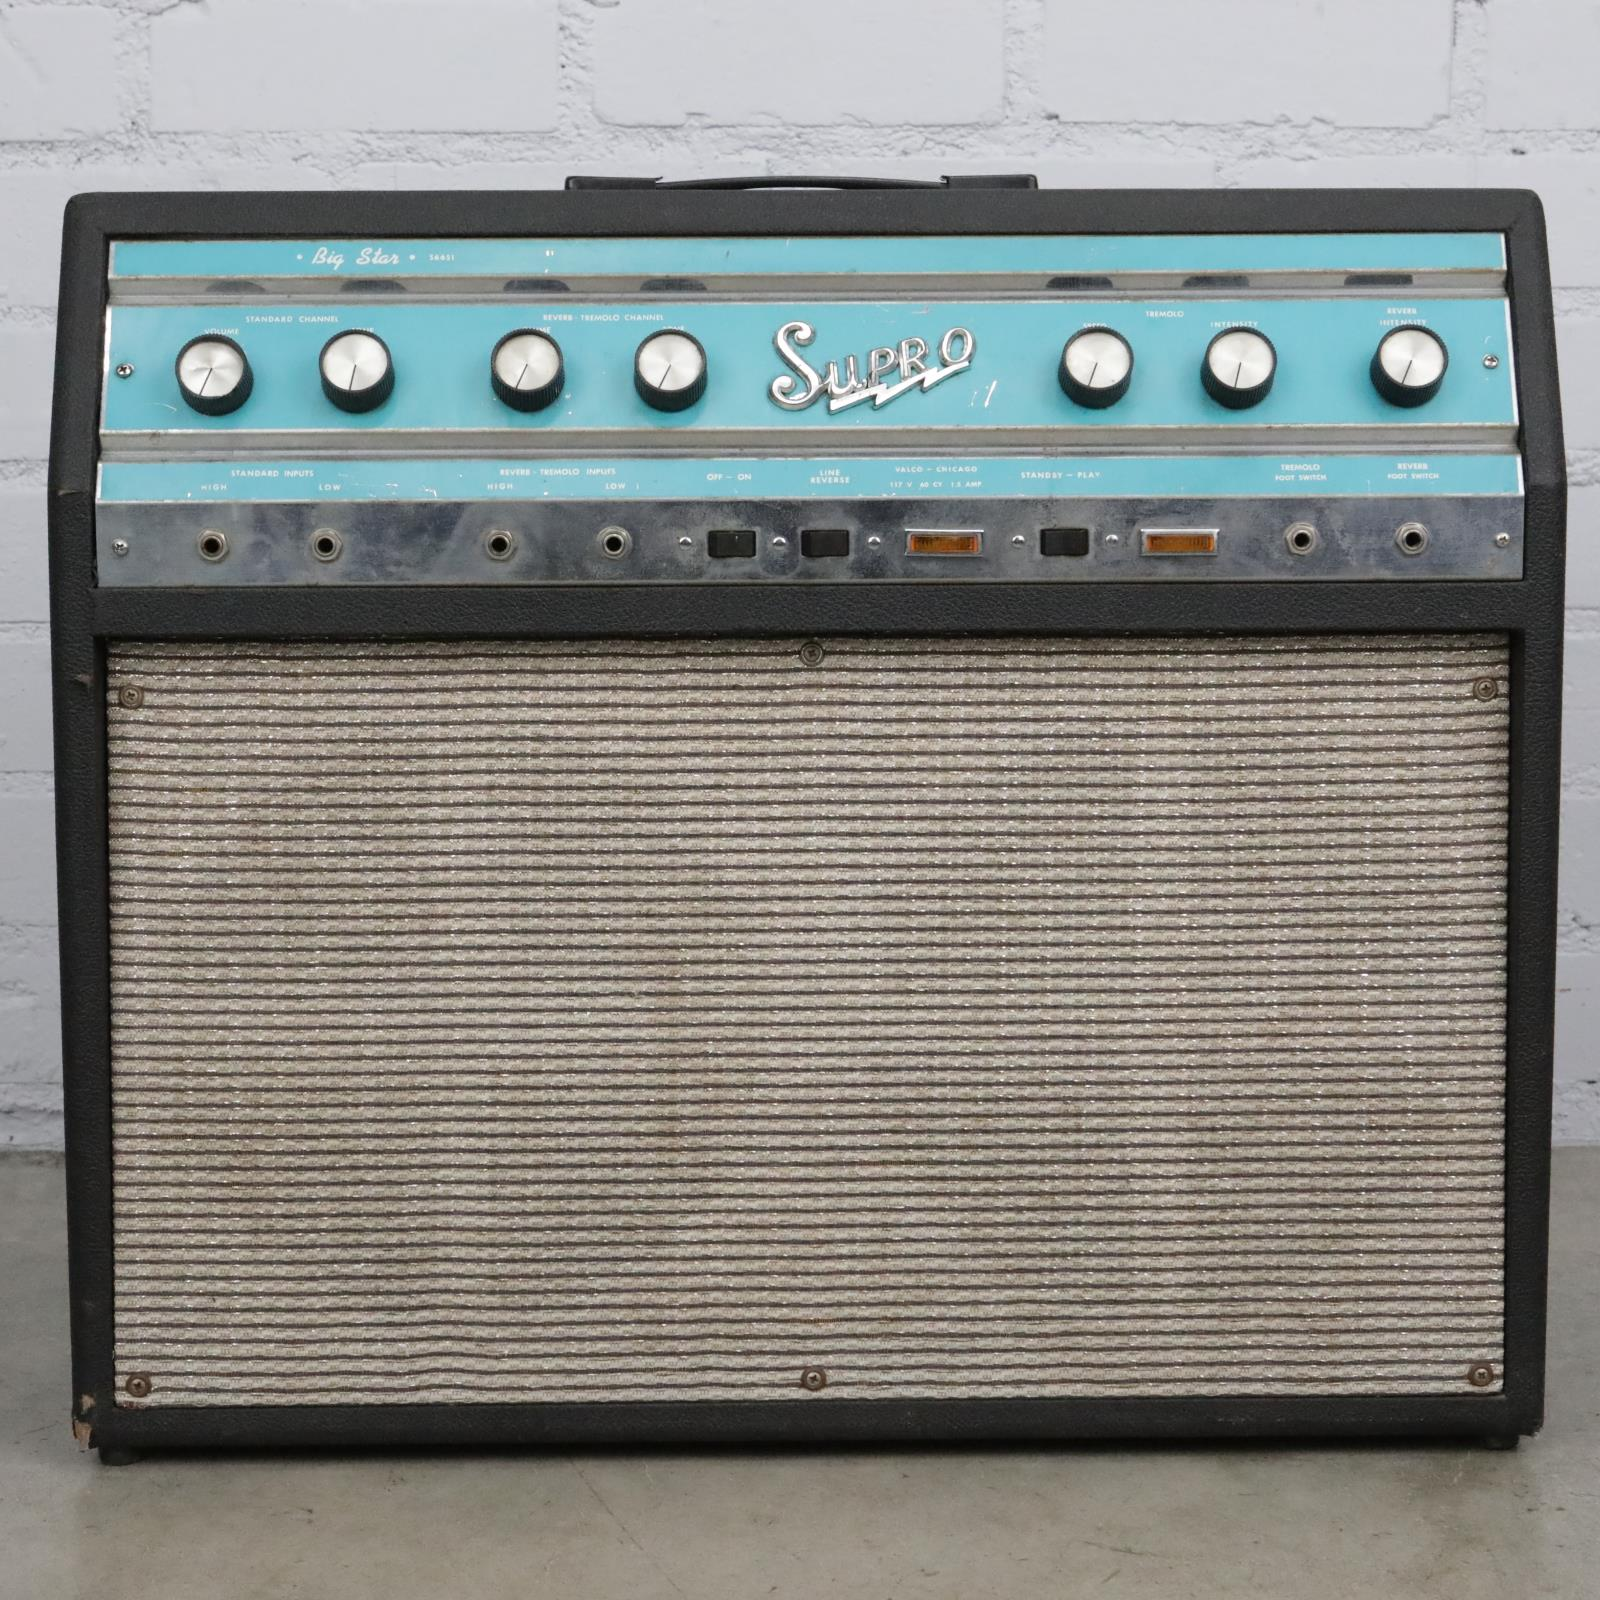 1960s Supro Big Star S6651 Tube Guitar Combo Amplifier #41591